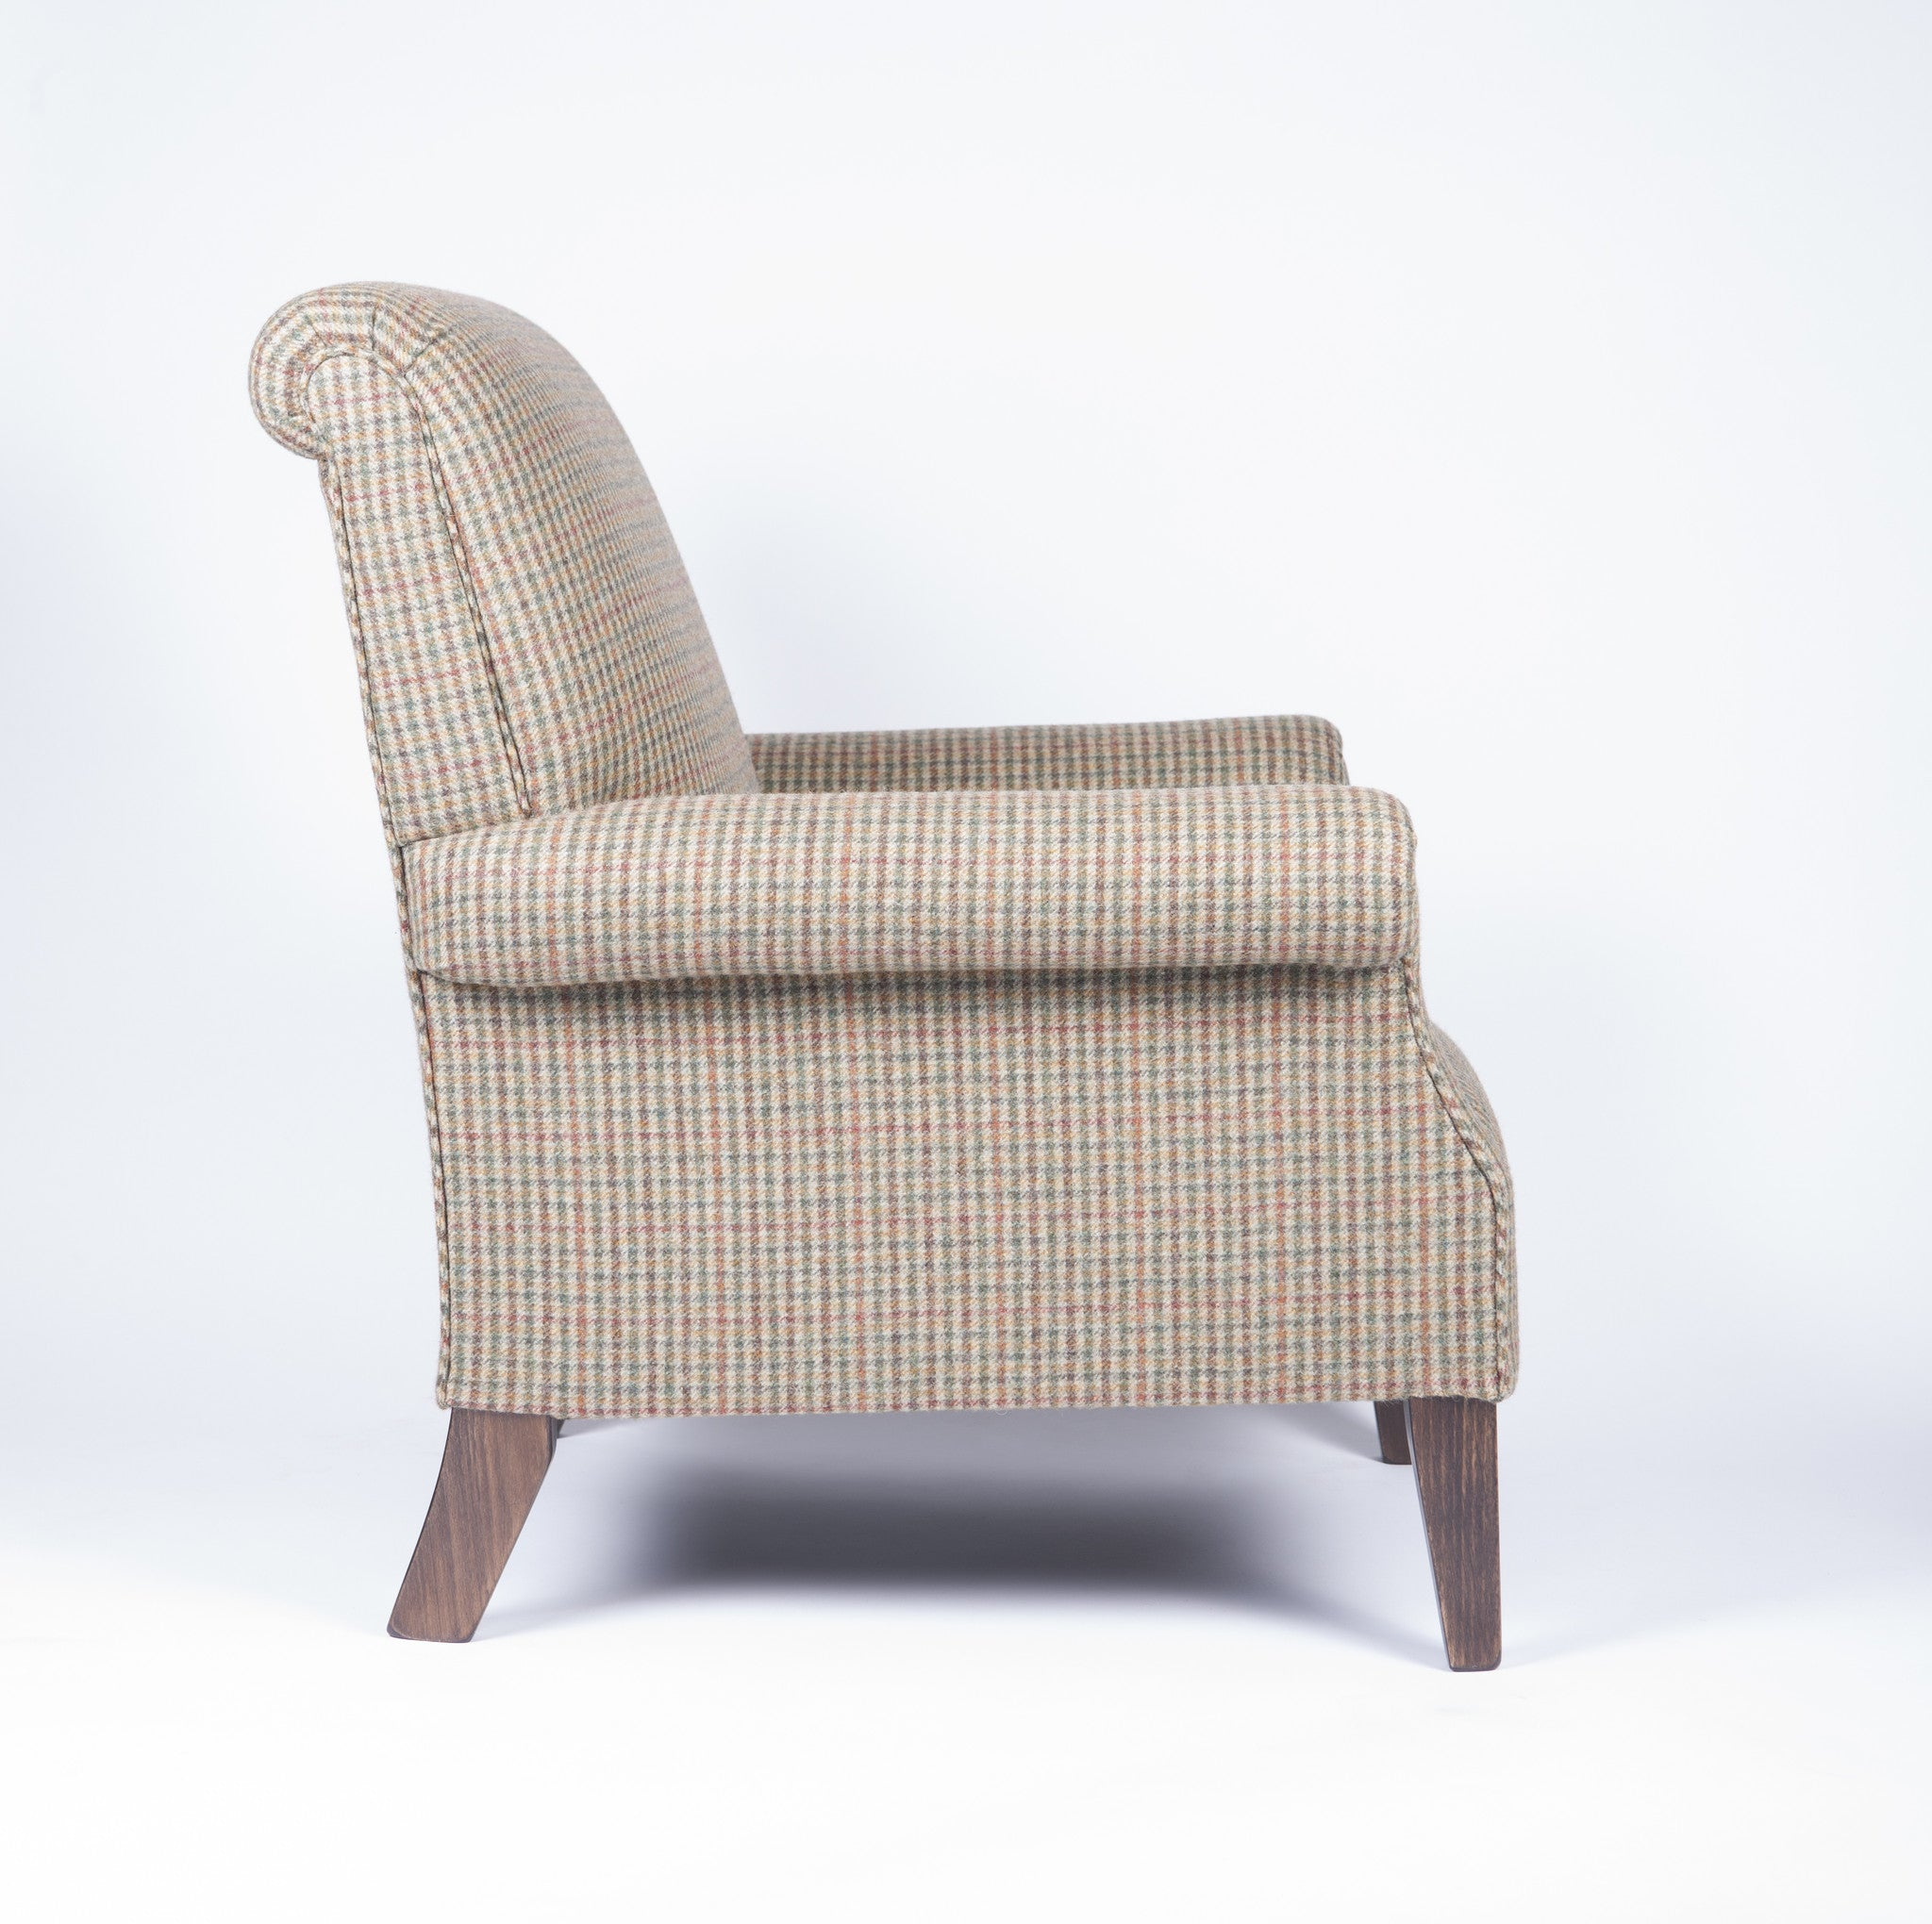 Burlington Children's Armchair - Ellerby England